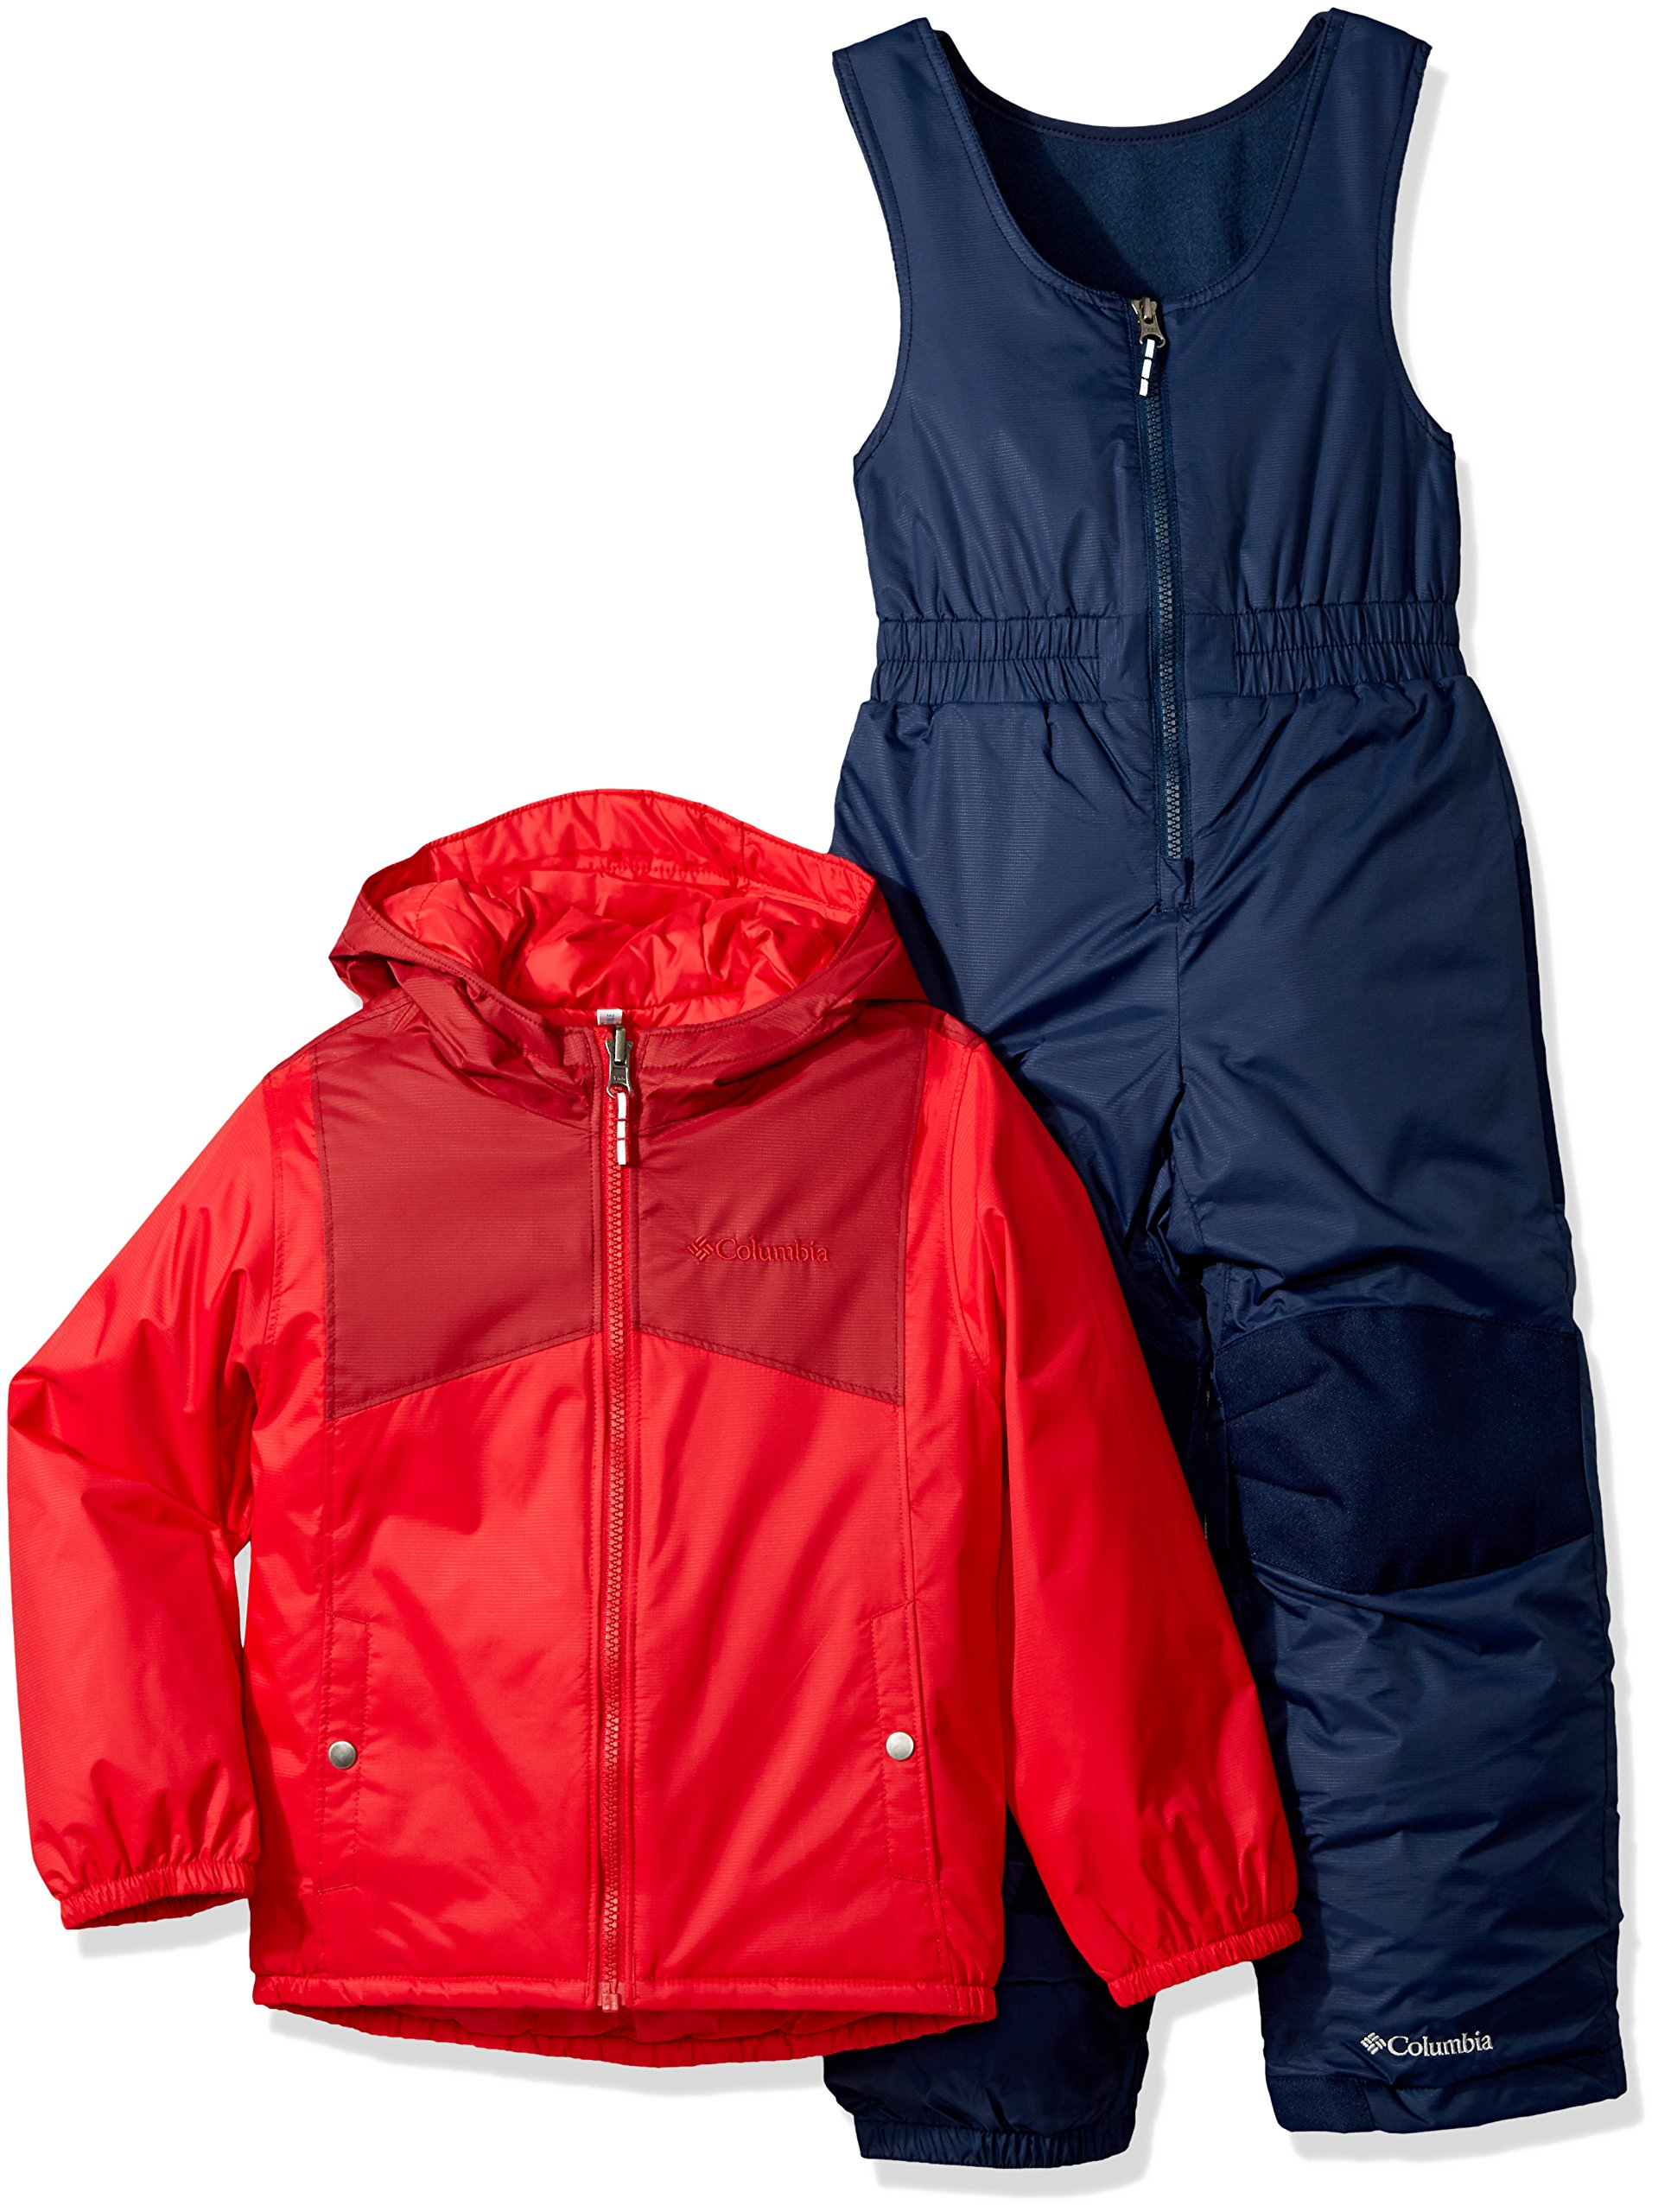 Columbia Little Girls' Double Flake Set, Mountain Red, Beet, X-Small